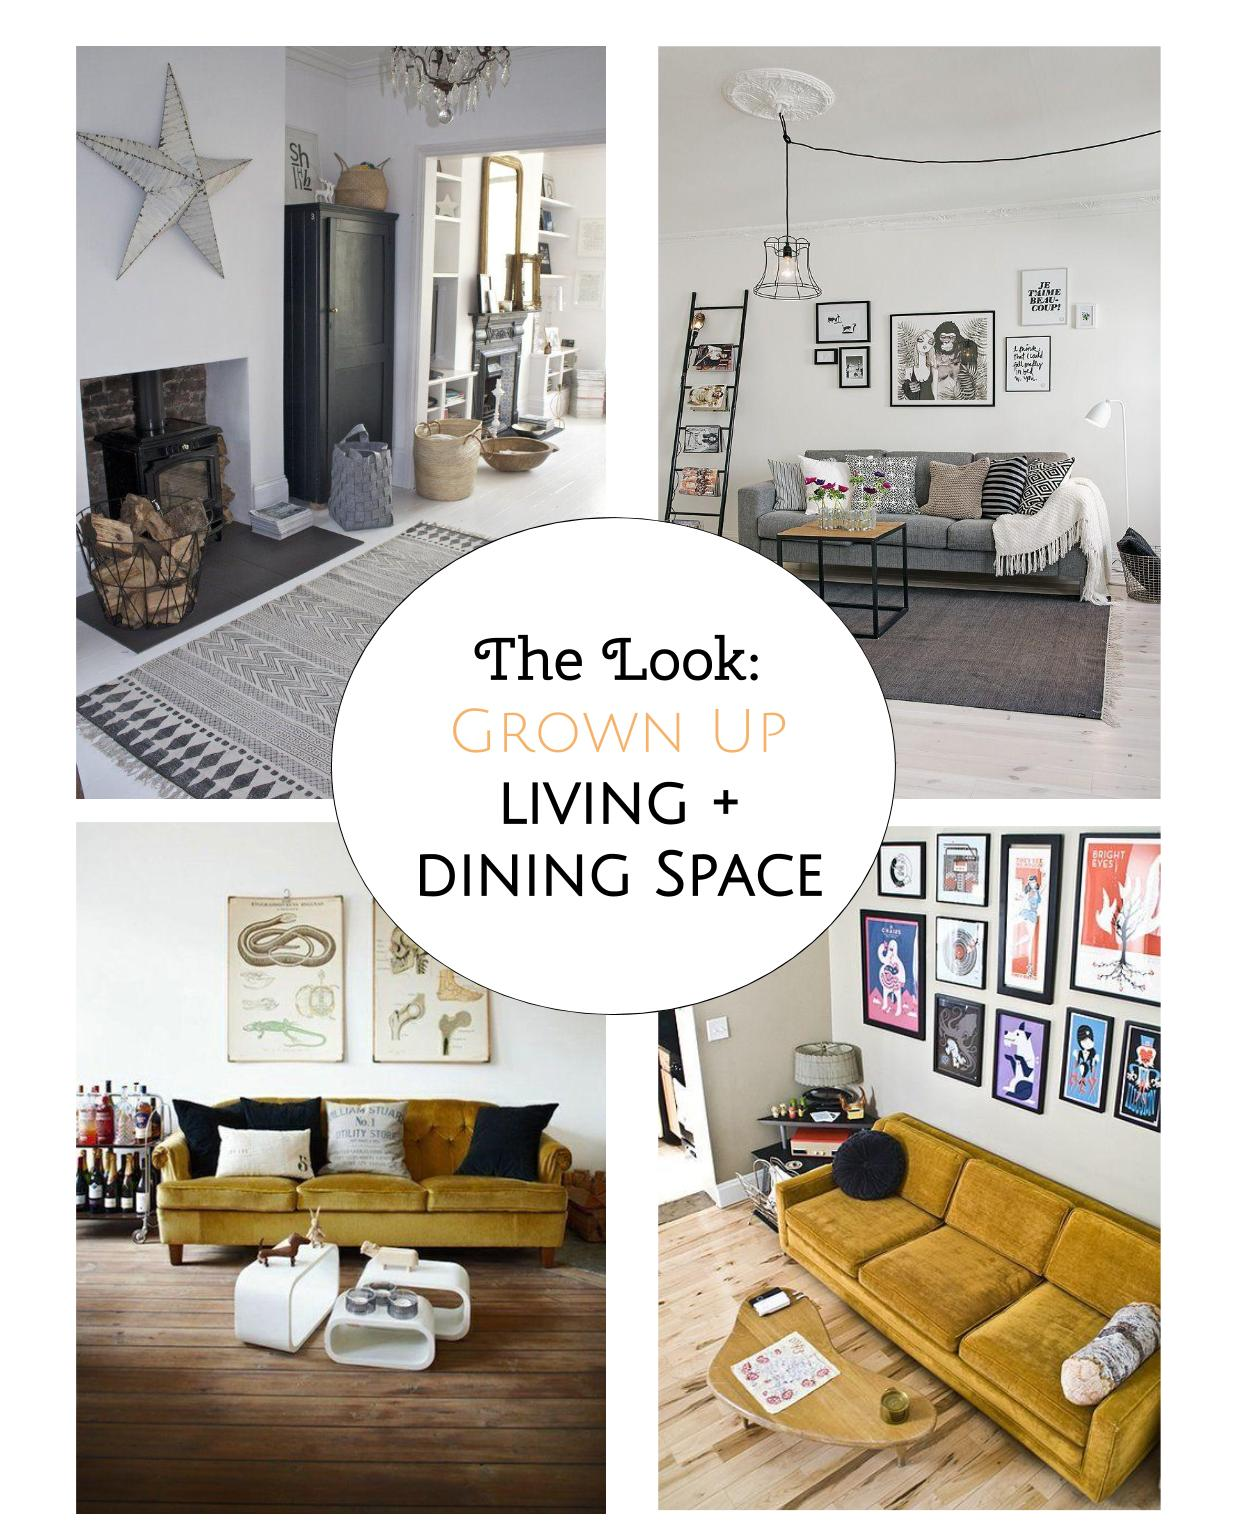 The Look: How to create a grown up open-plan living and dining space with www.welovehomebloe.com